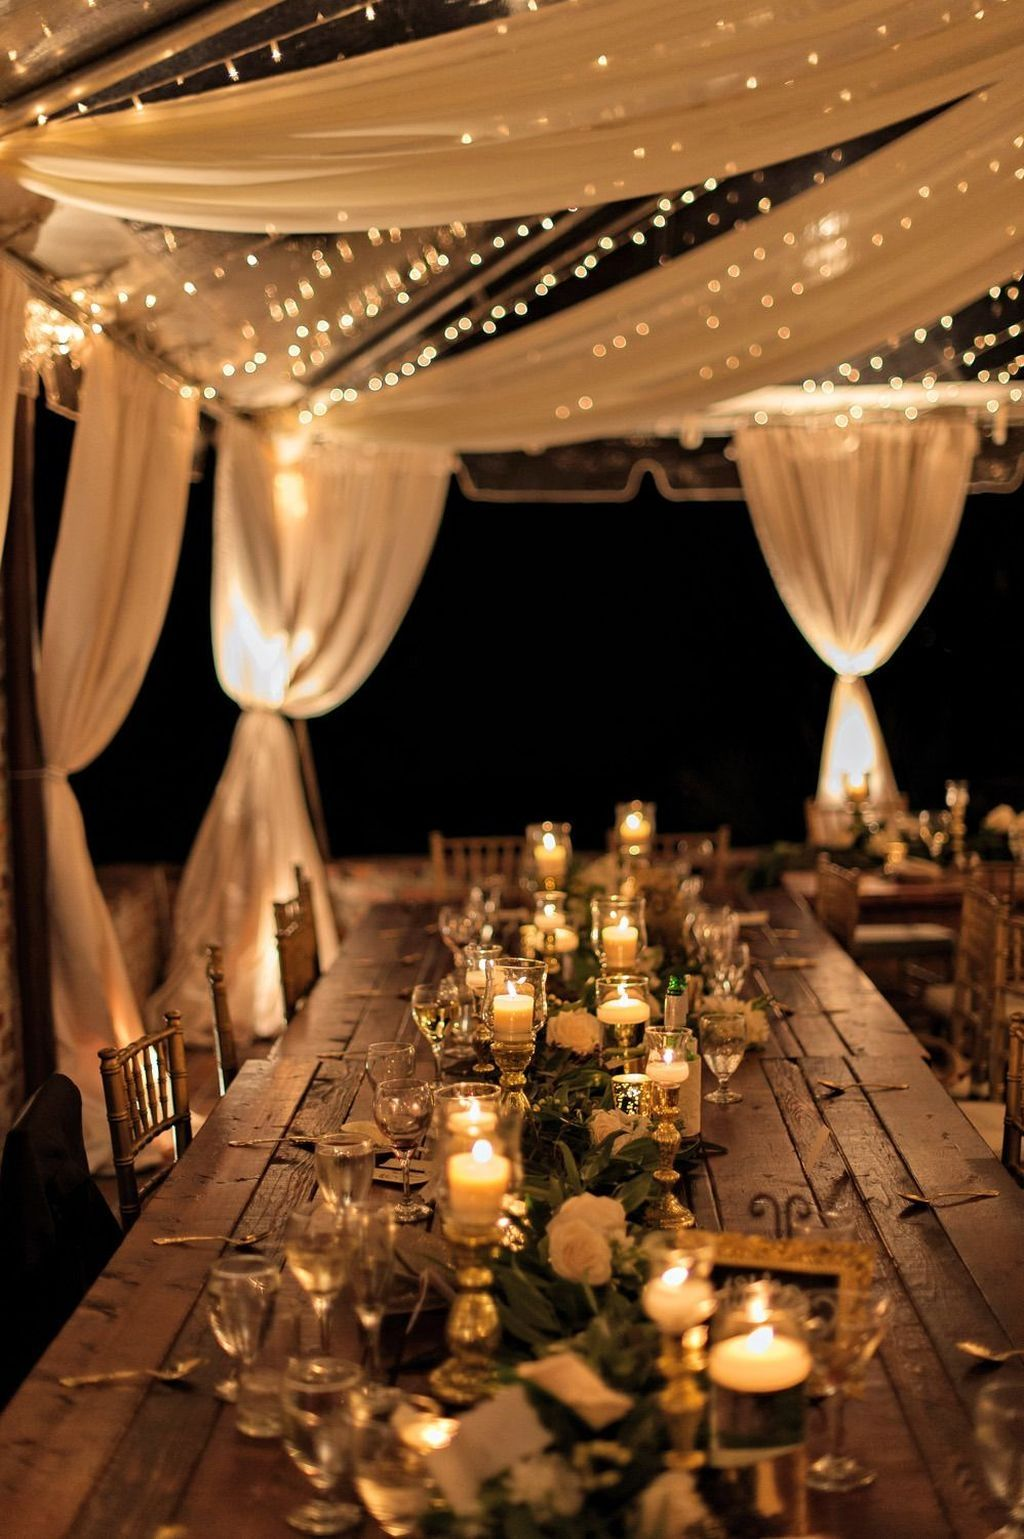 Wedding dinner decoration ideas  Awesome  Rustic Winter Wedding Table Decoration Ideas More at